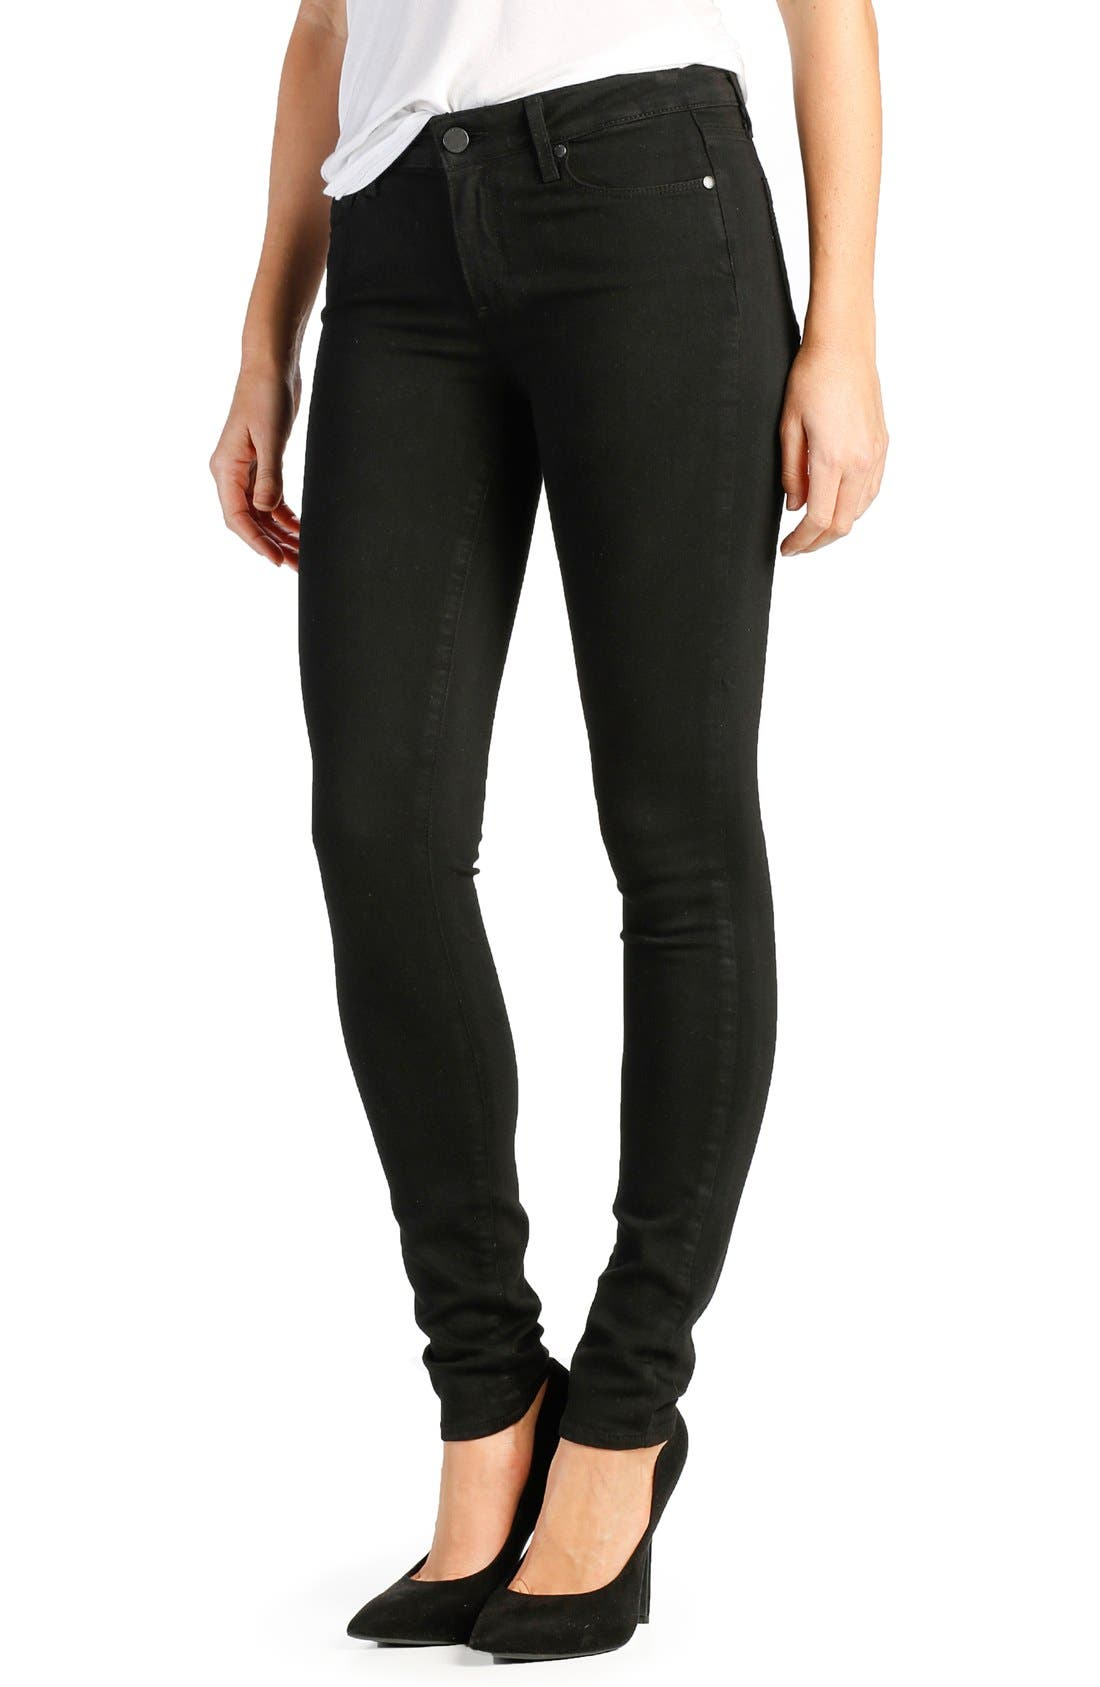 Main Image - PAIGE 'Transcend - Leggy' Ultra Skinny Jeans (Black Shadow) (Long)